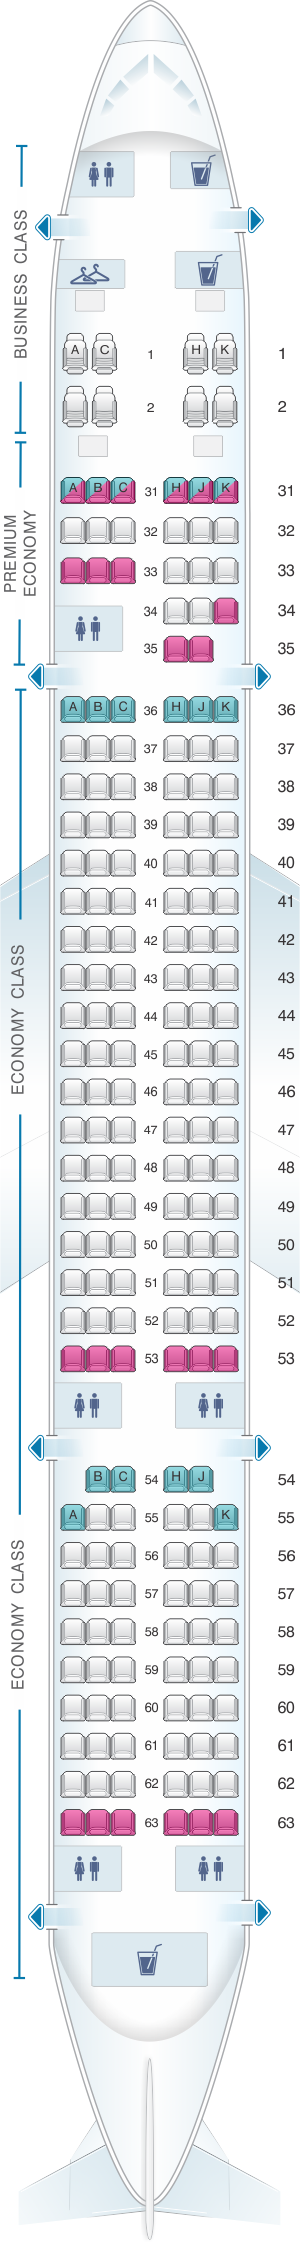 Seat map for China Southern Airlines Boeing B757